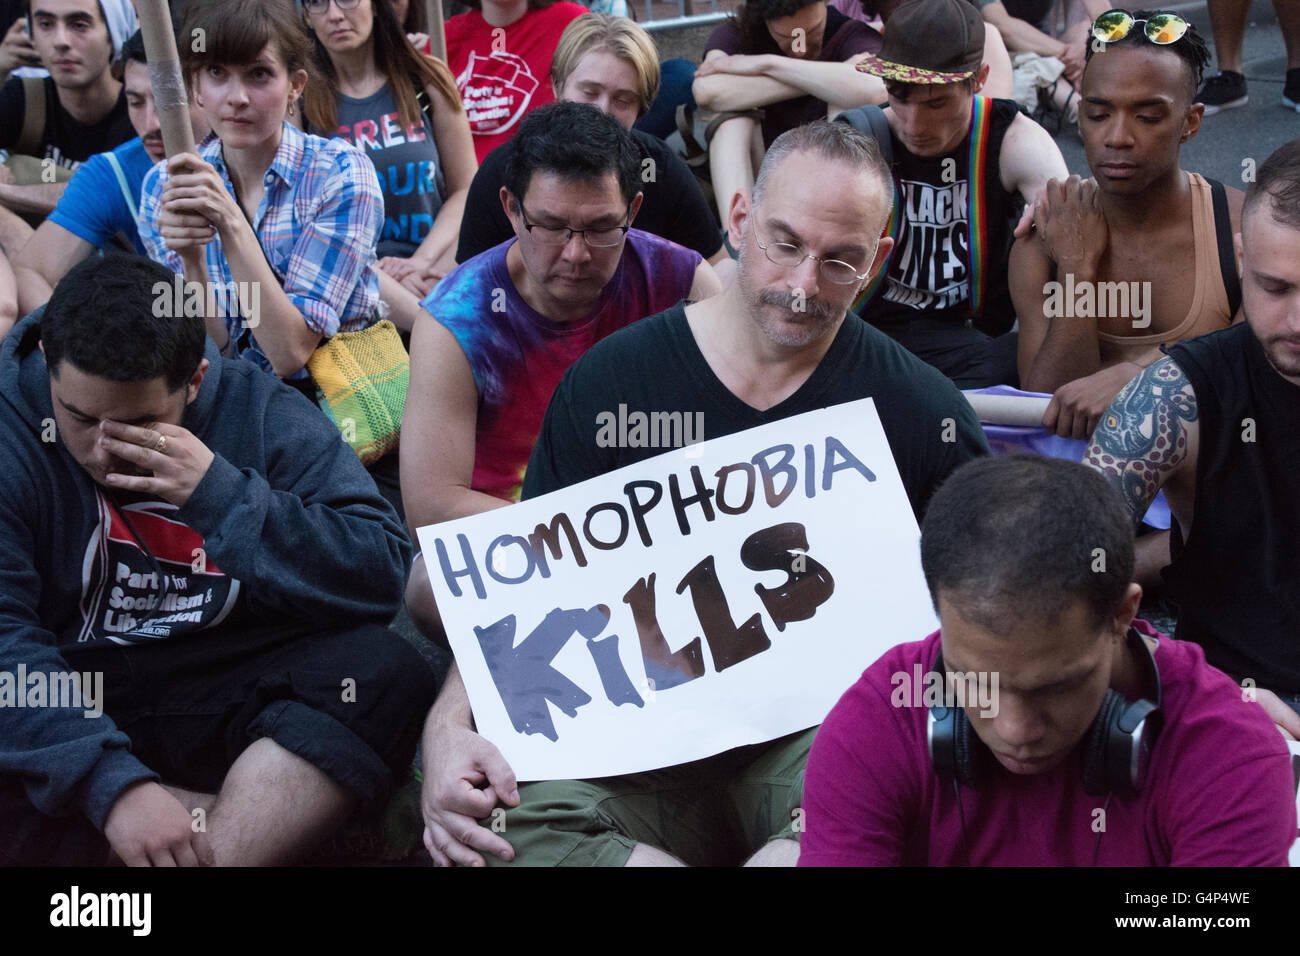 At the fitbit ipo celebration at new york stock exchange on thursday - New York Usa 18th June 2016 Emotional Moments As Demonstrators Commemorate The Orlando